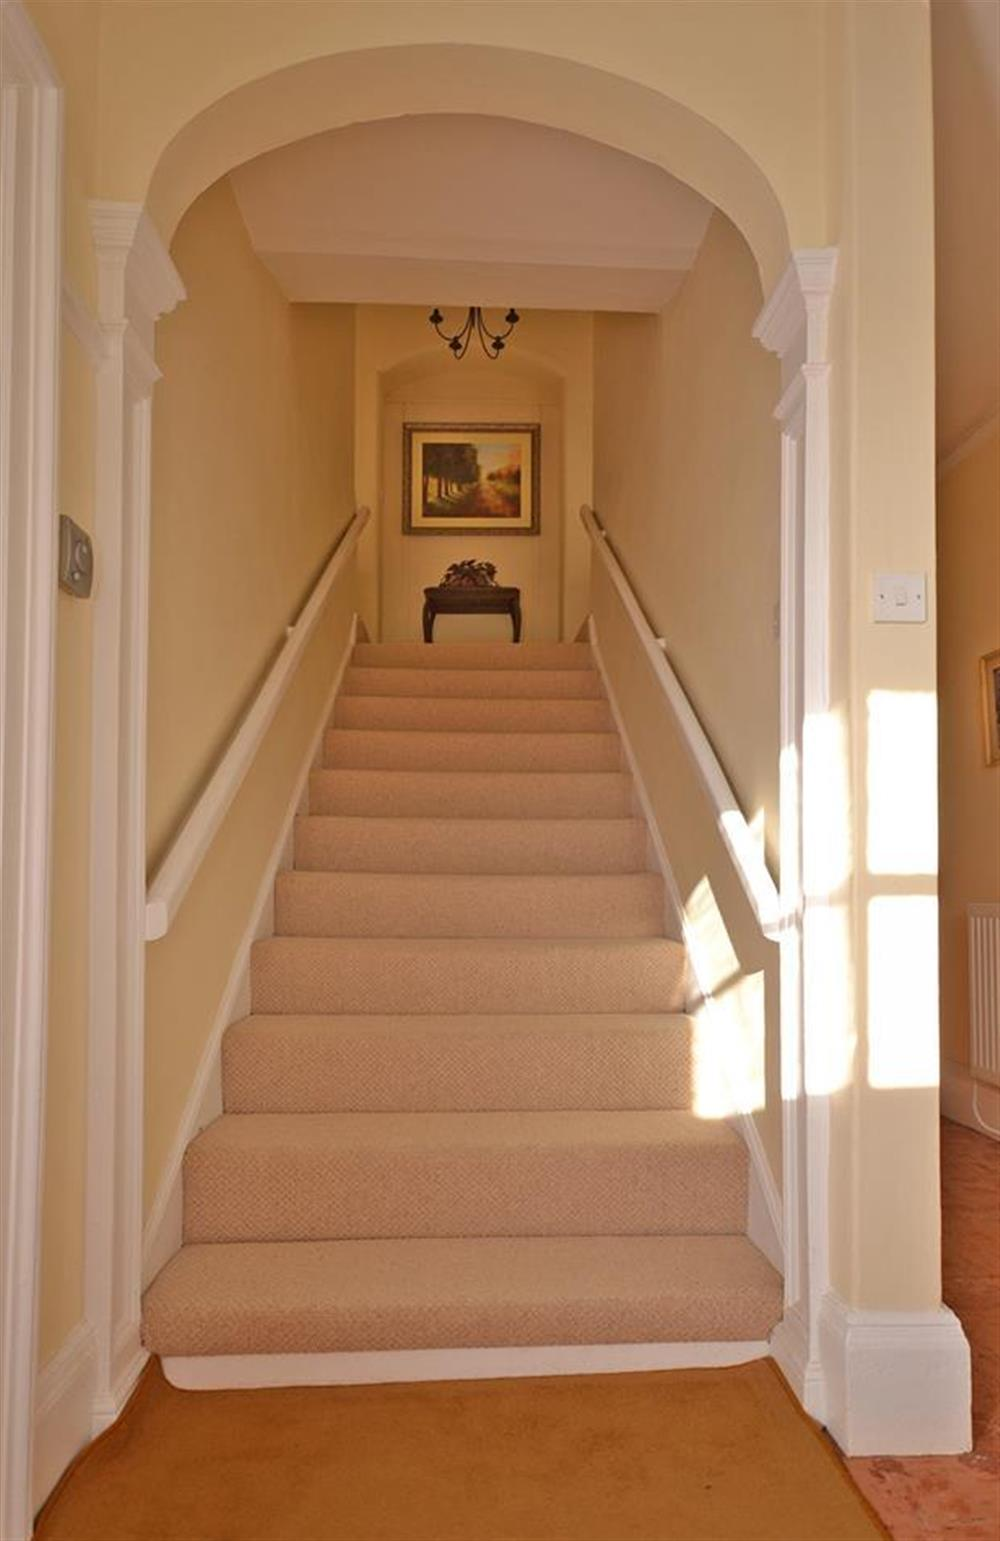 The wide staircase leading up to the first floor at Charford Manor, Diptford